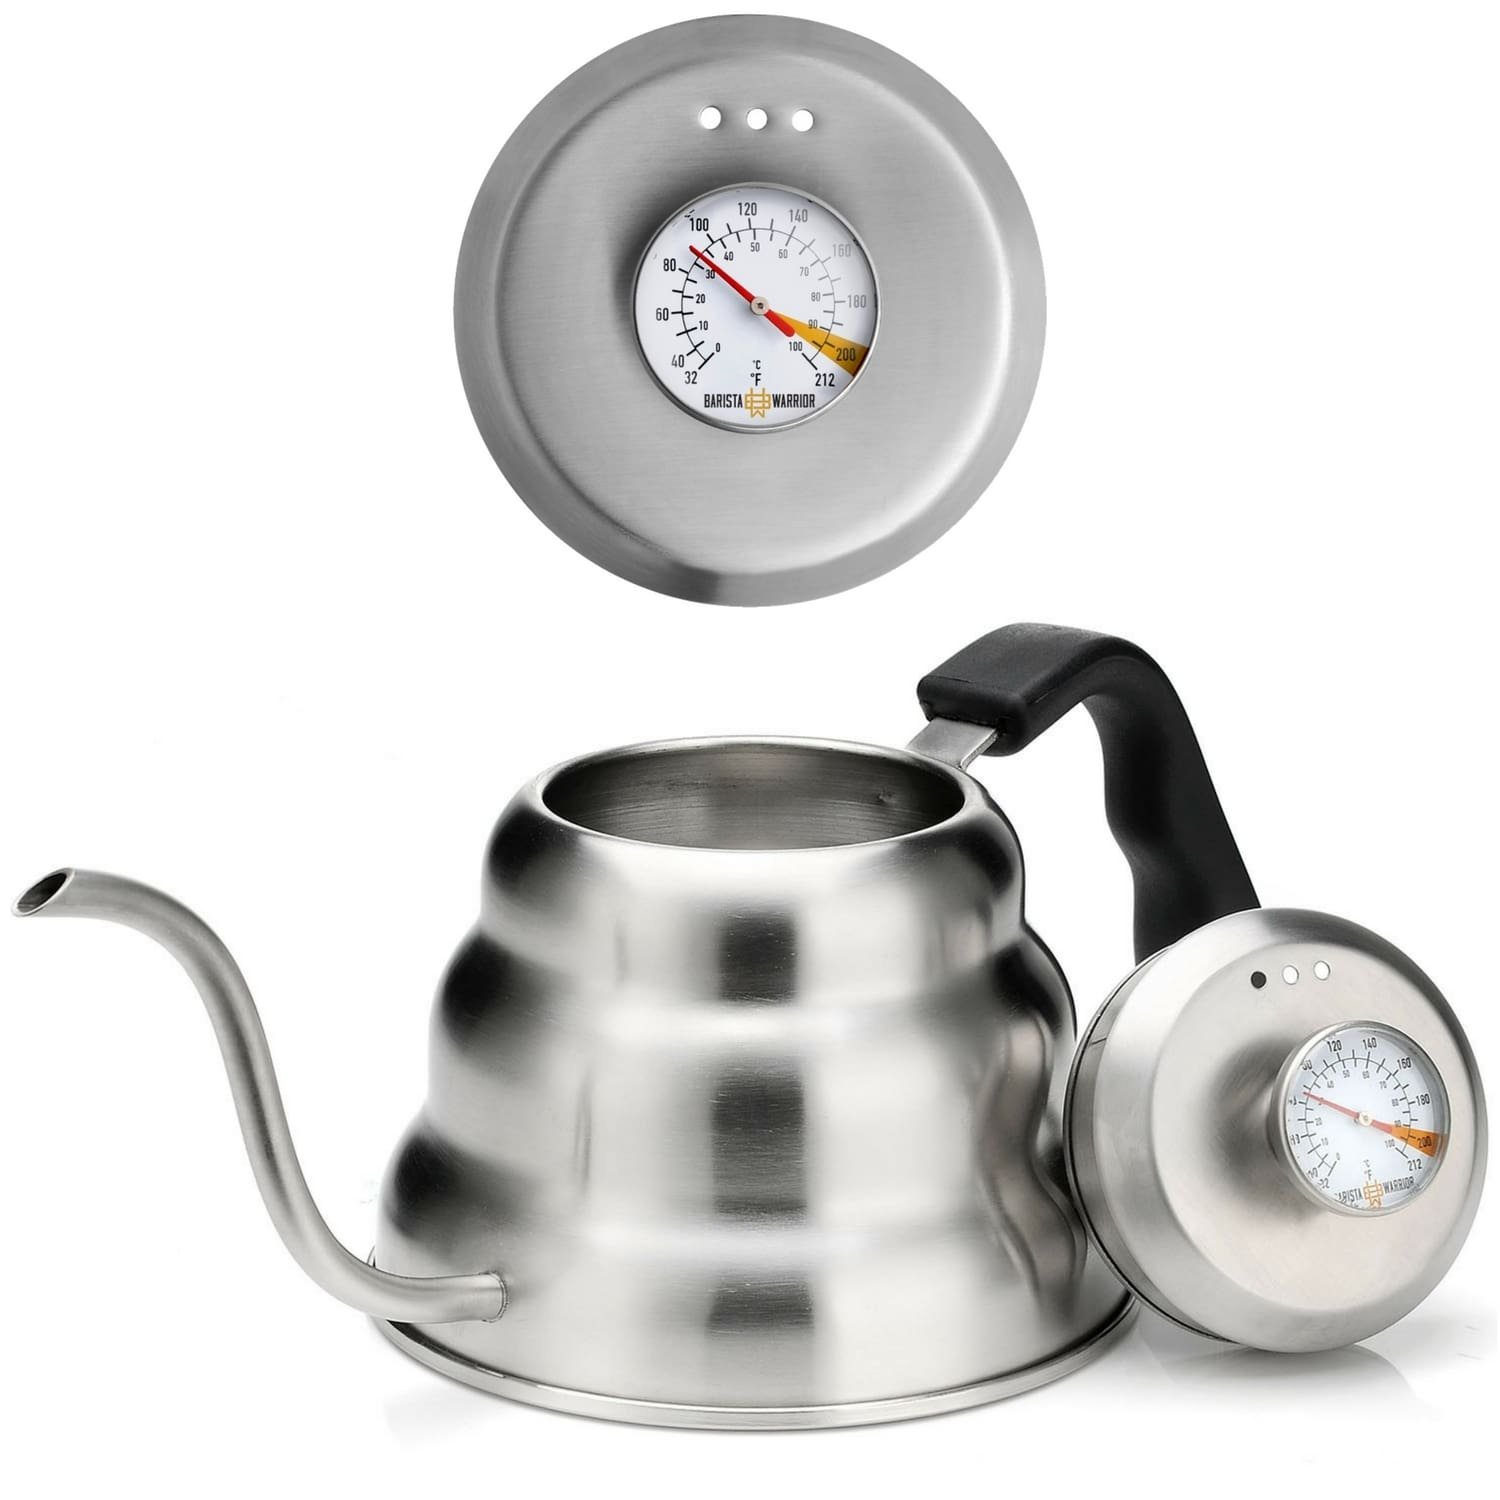 Pour Over Kettle with Thermometer for Exact Temperature - Gooseneck Kettle for Pour Over Coffee and Tea - 1.0 Liter | 34 fl oz